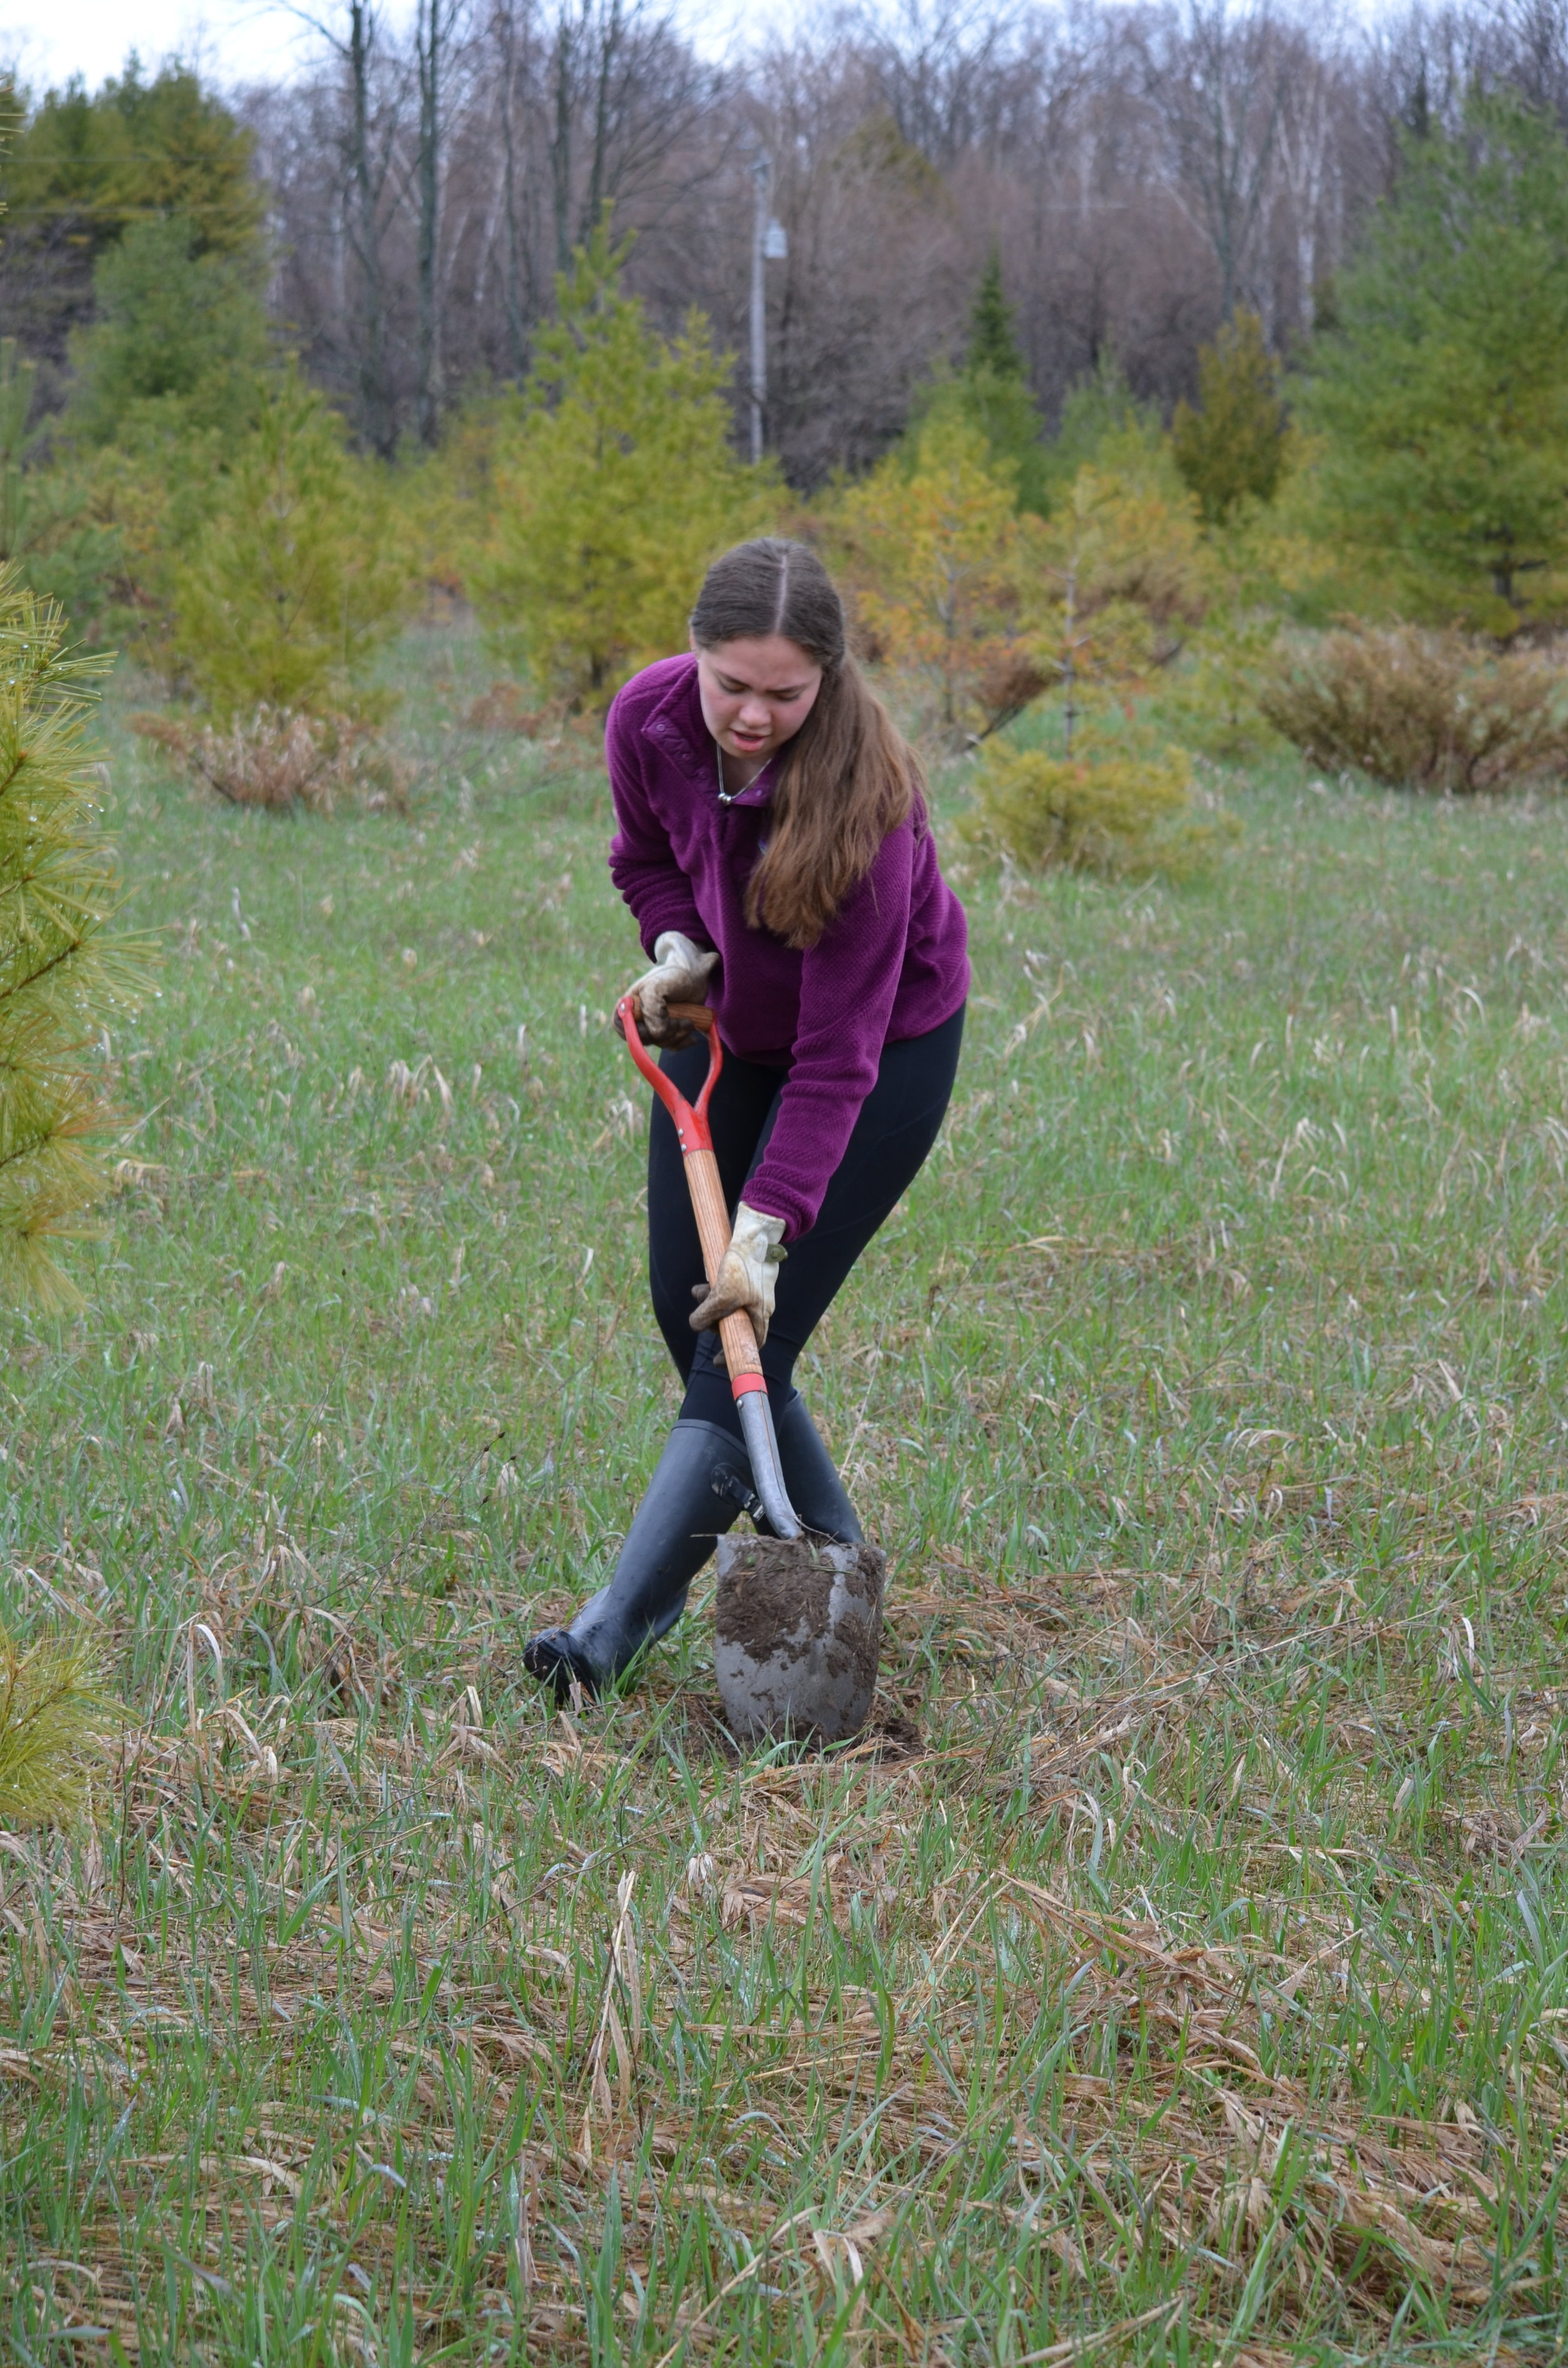 Sturgeon Bay High School student plants trees with classmates on May 6, 2019 on The Nature Conservancy property in Ellison Bay, WI.